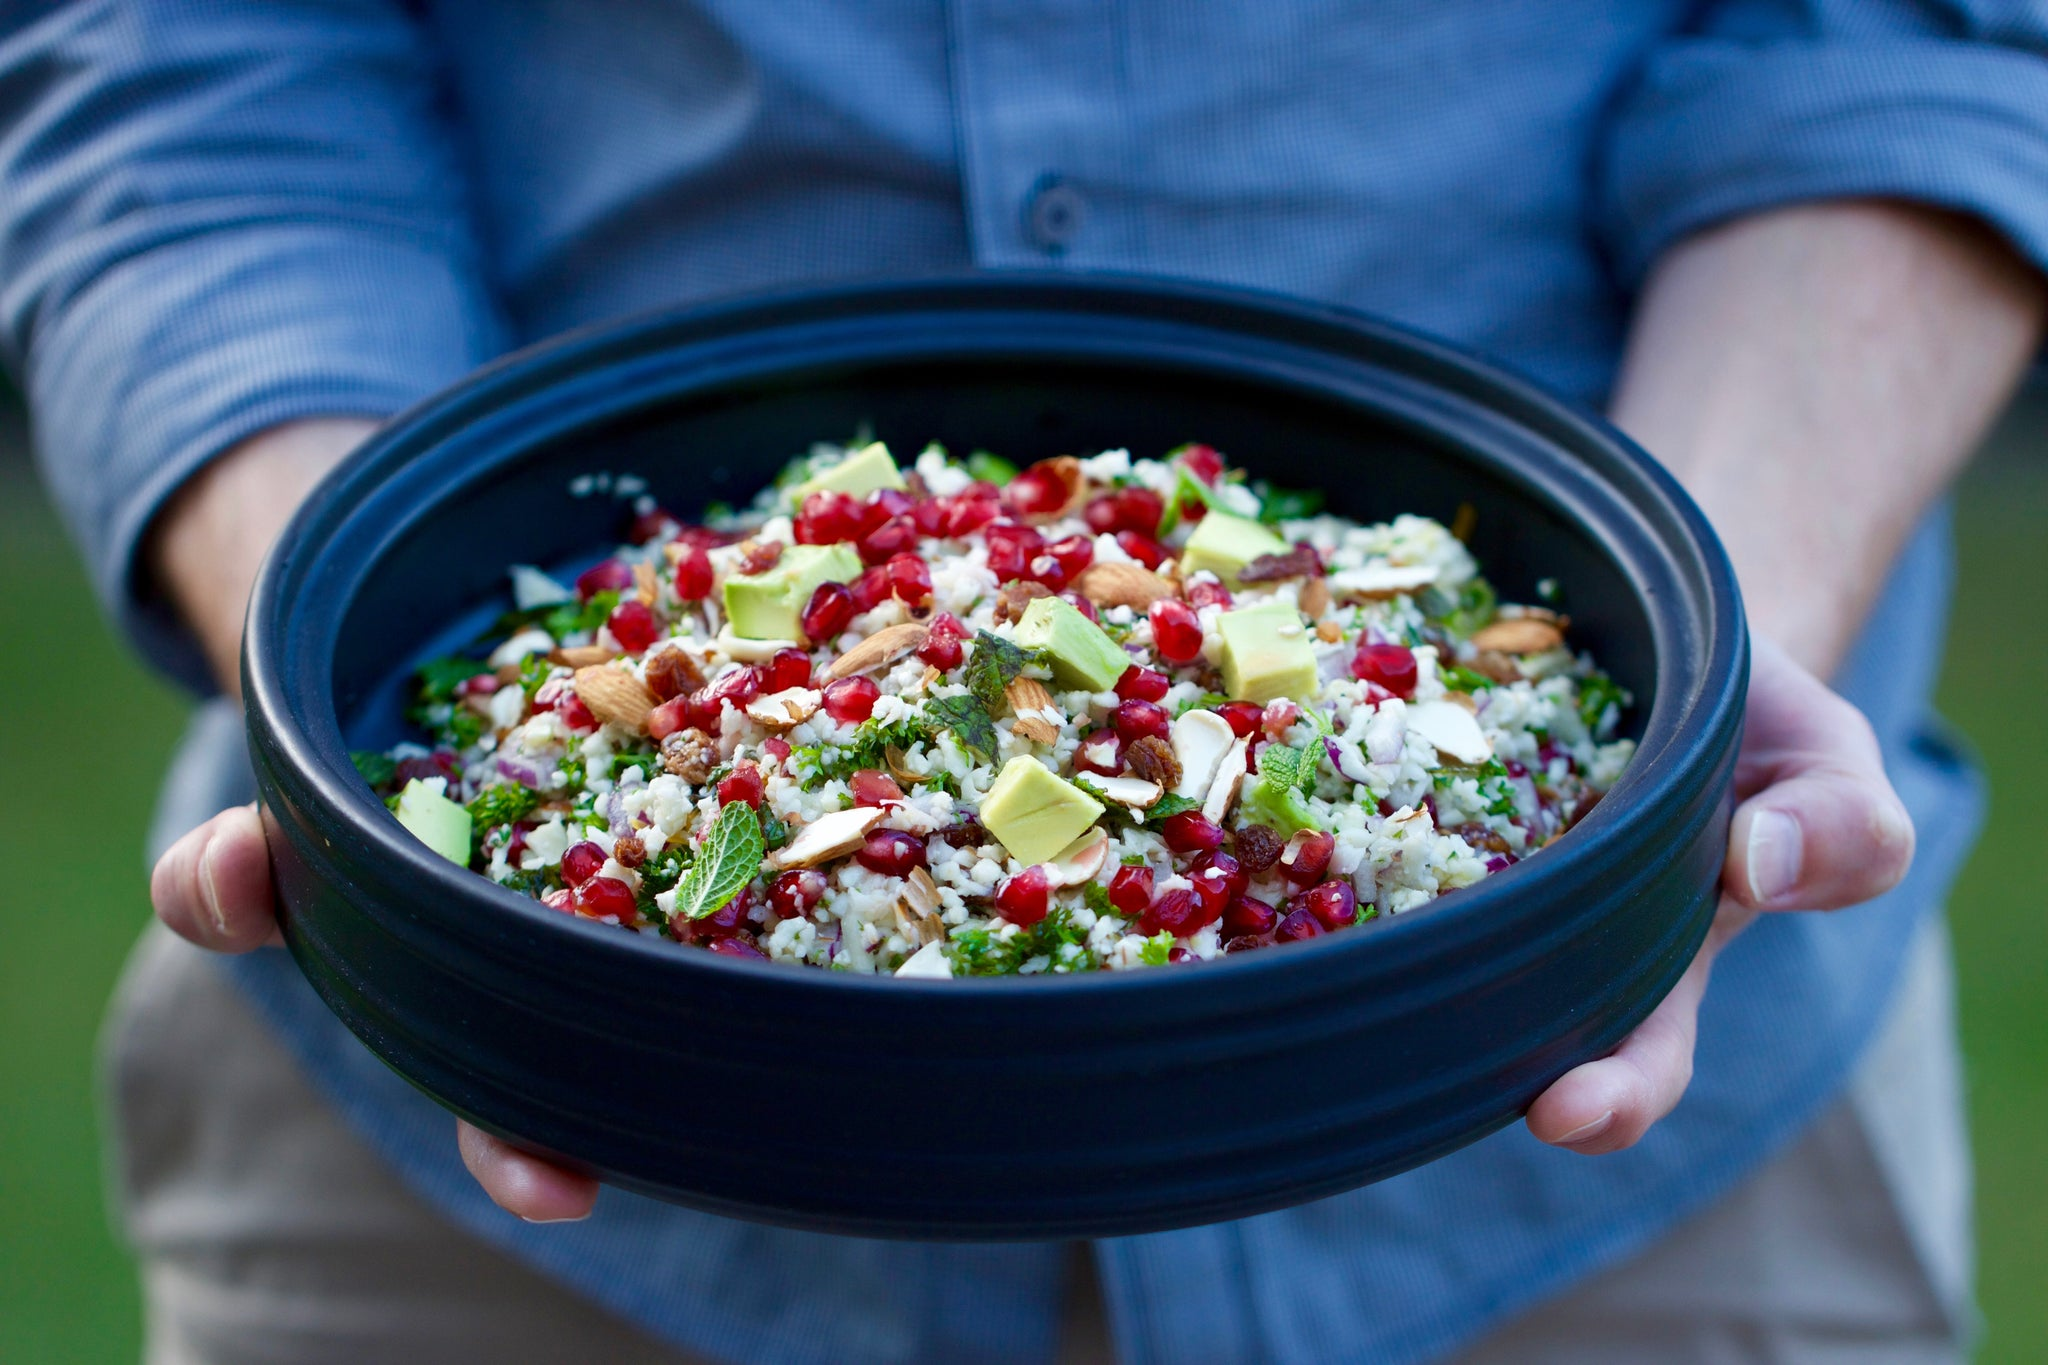 Summery fresh 15 minute Pomegranate Cauliflower Couscous Salad - #vegan #vegetarian #dairyfree #raw #healthy #recipe #plantbased #pomegranate #cauliflower #moroccan #begoodorganics